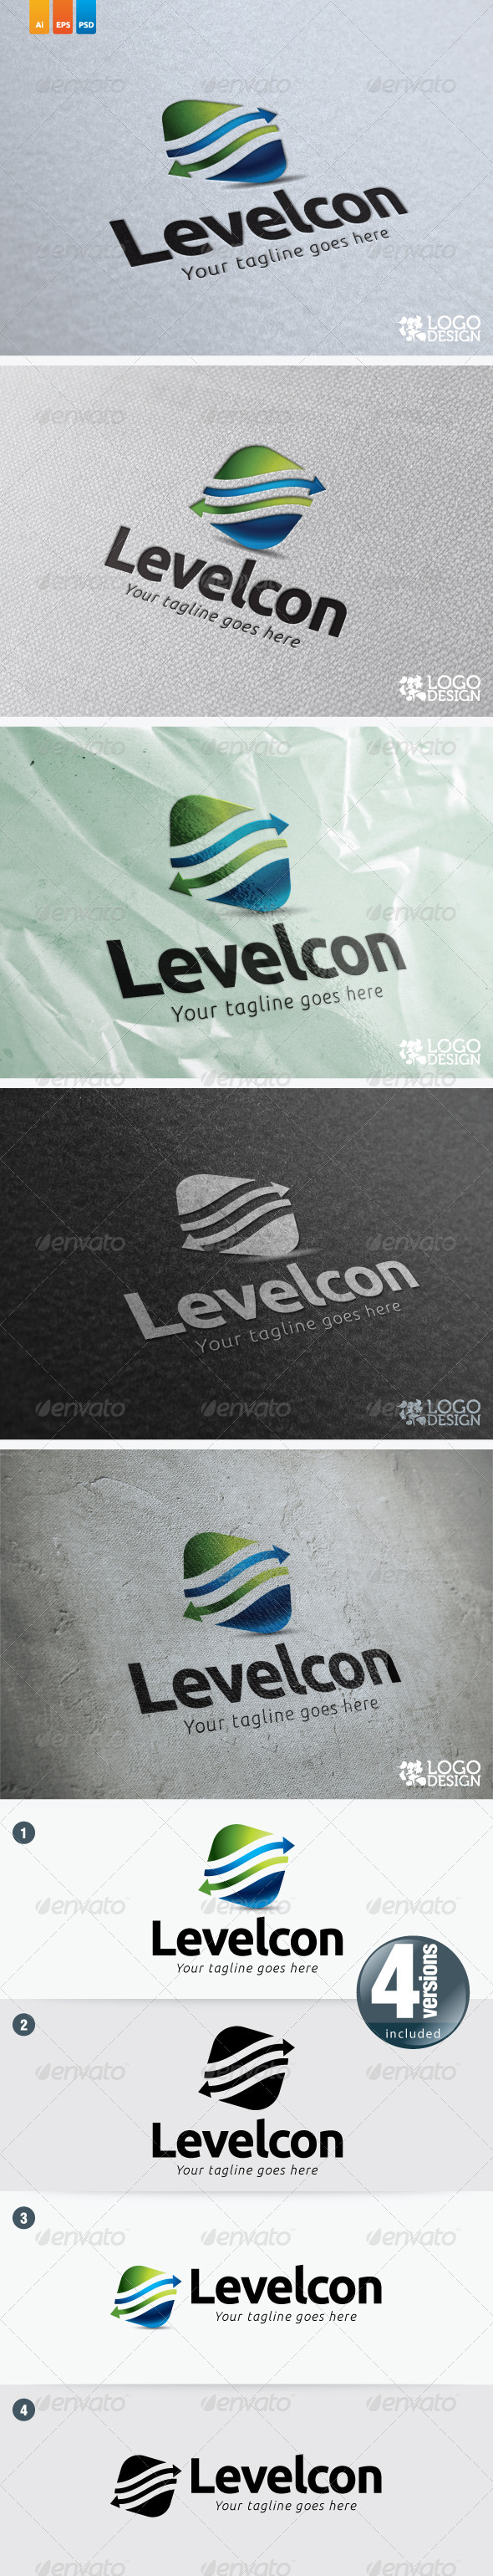 LevelCon - 3d Abstract